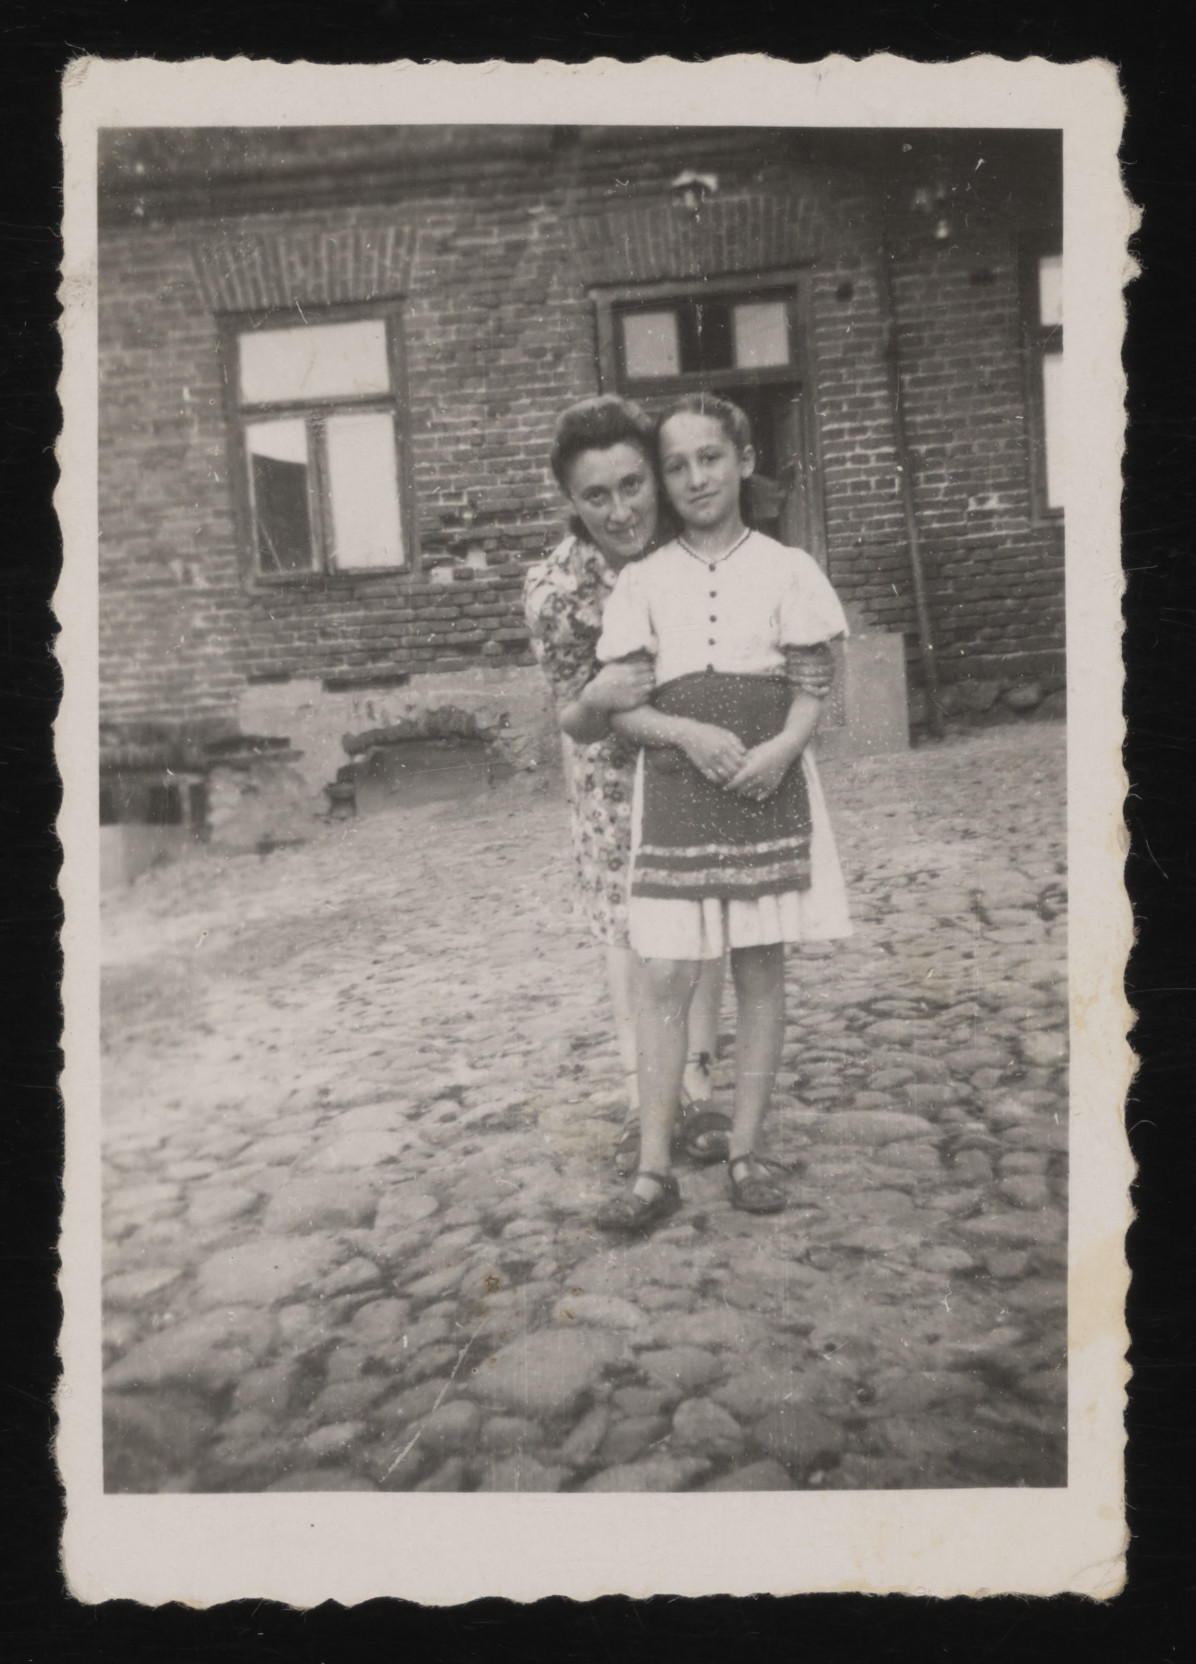 A Jewish mother and daughter pose in front of their house in Klodawa.  Pictured are Edzia Rachwalska (the cousin of Gina Tabaczynska) with her daughter, Sabina. They survived the war in hiding, along with Edzia's husband, Aron.